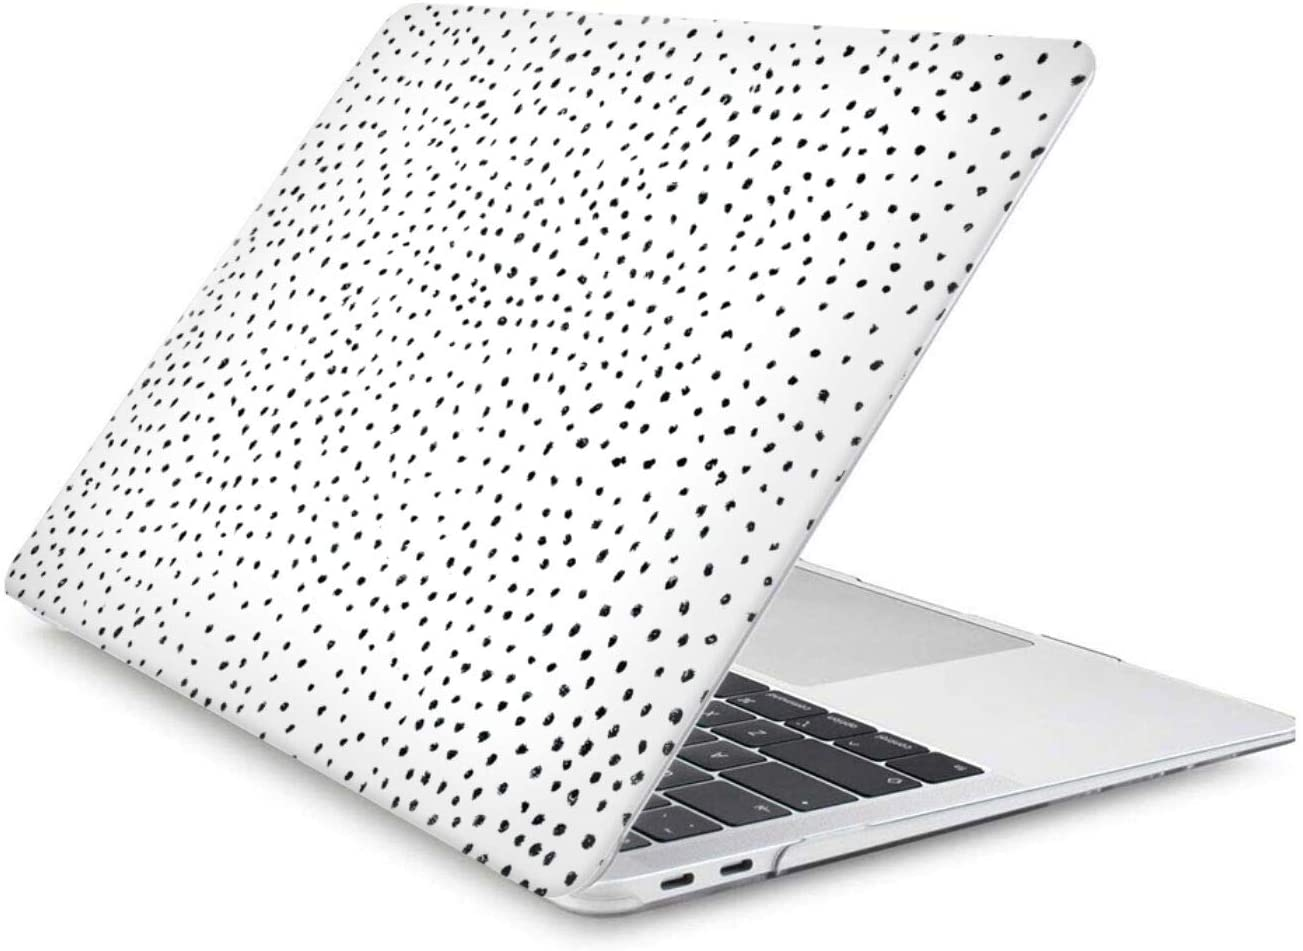 Head Case Designs Officially Licensed Caitlin Workman Dotted Patterns Hard Crystal Case Cover Compatible with MacBook Pro 16